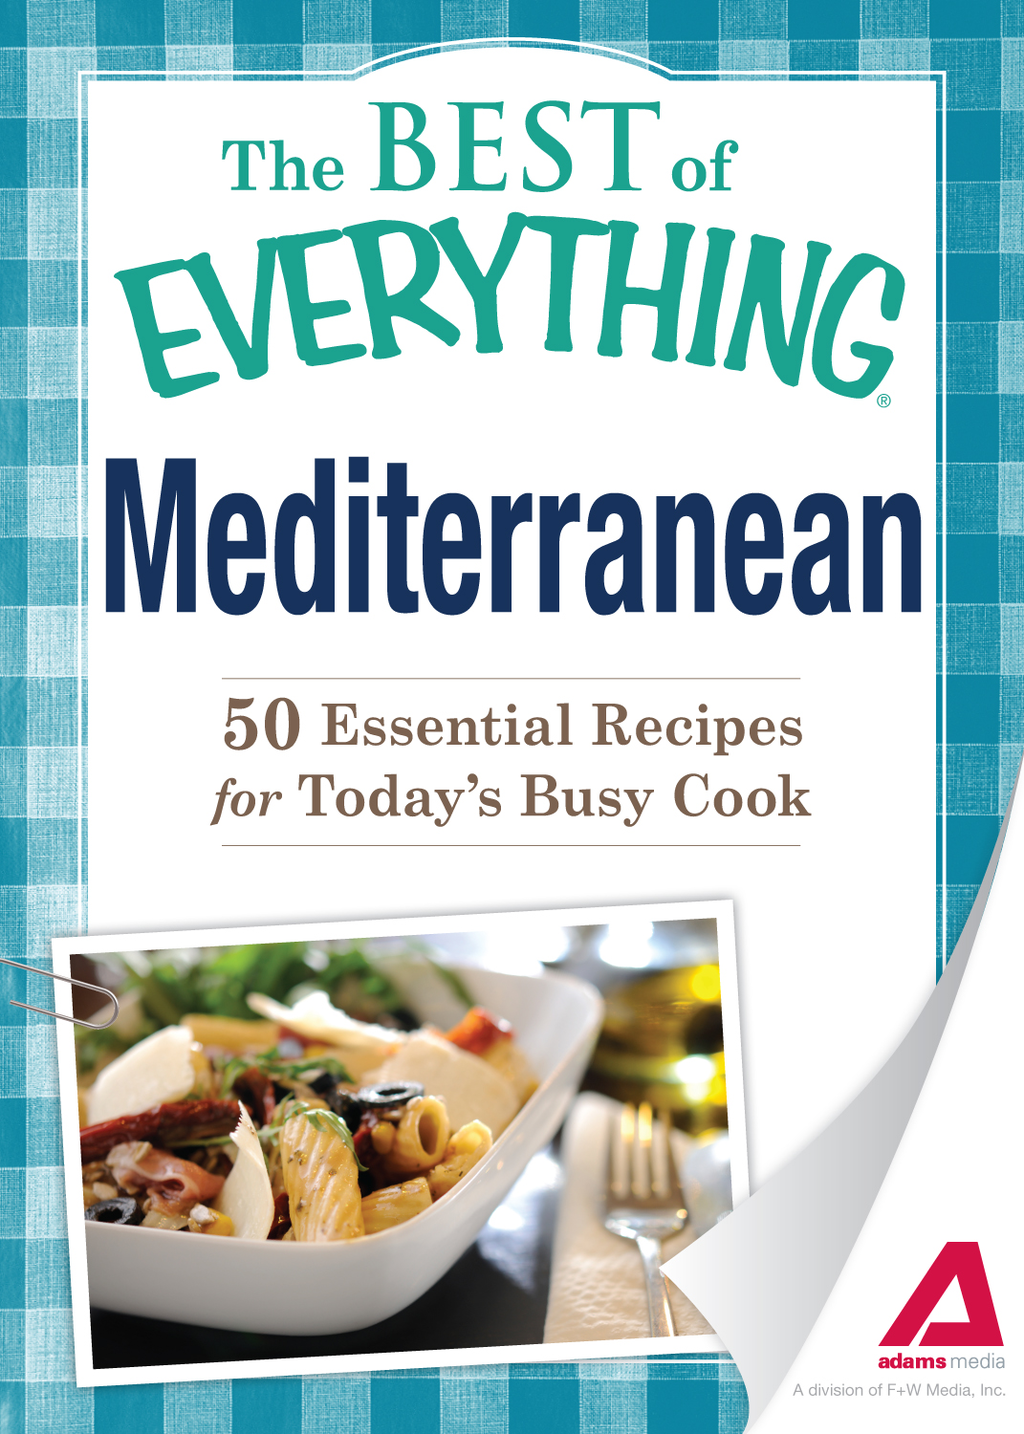 Mediterranean 50 Essential Recipes for Today's Busy Cook